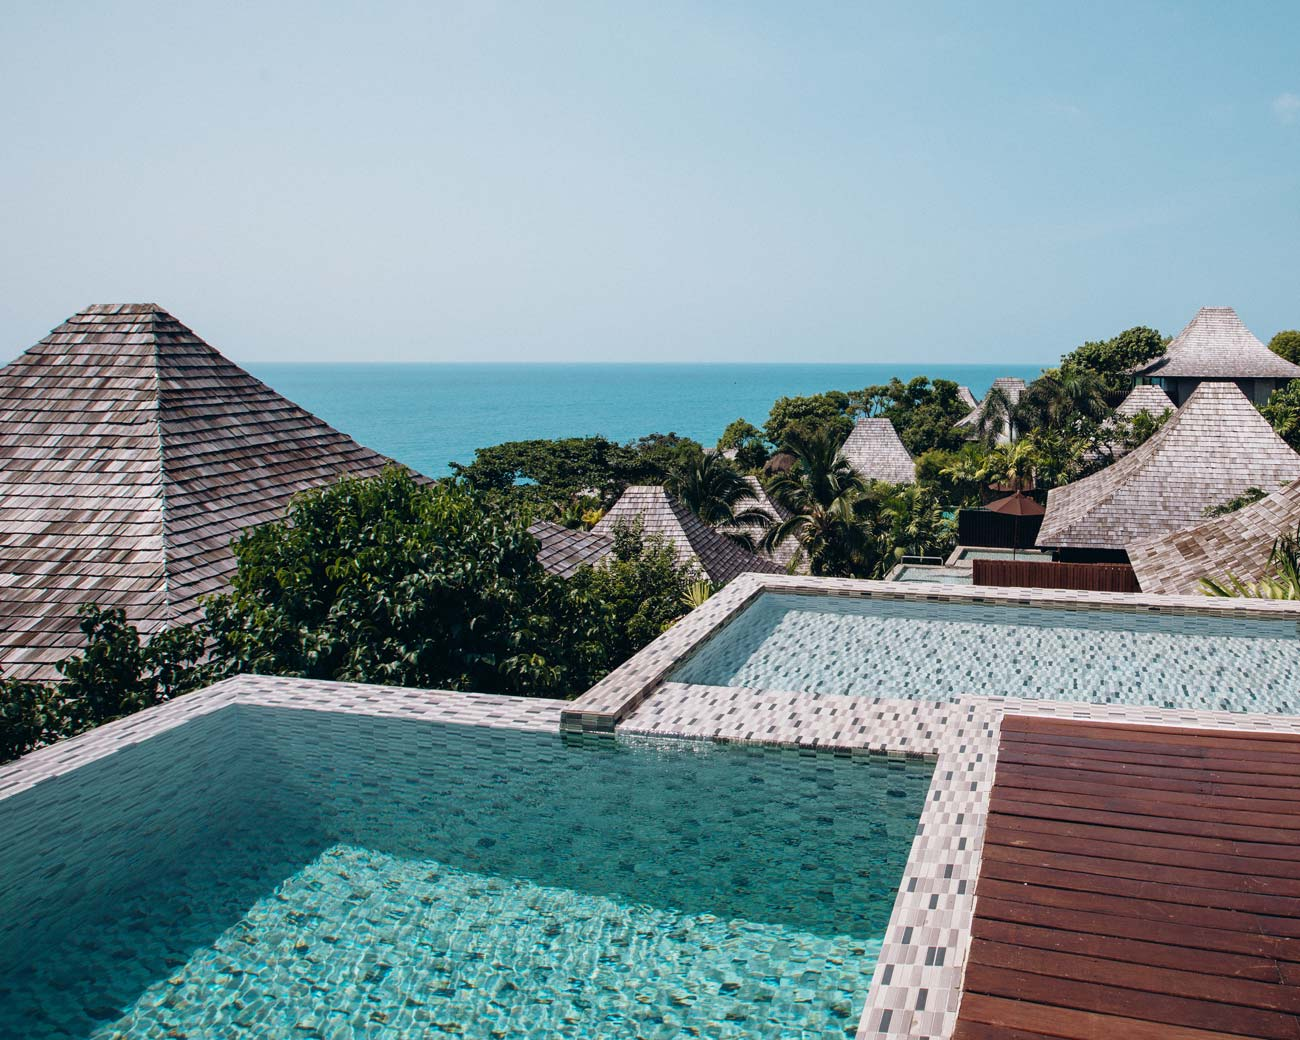 Silavadee Pool Spa Resort In Koh Samui Thailand Stay Close